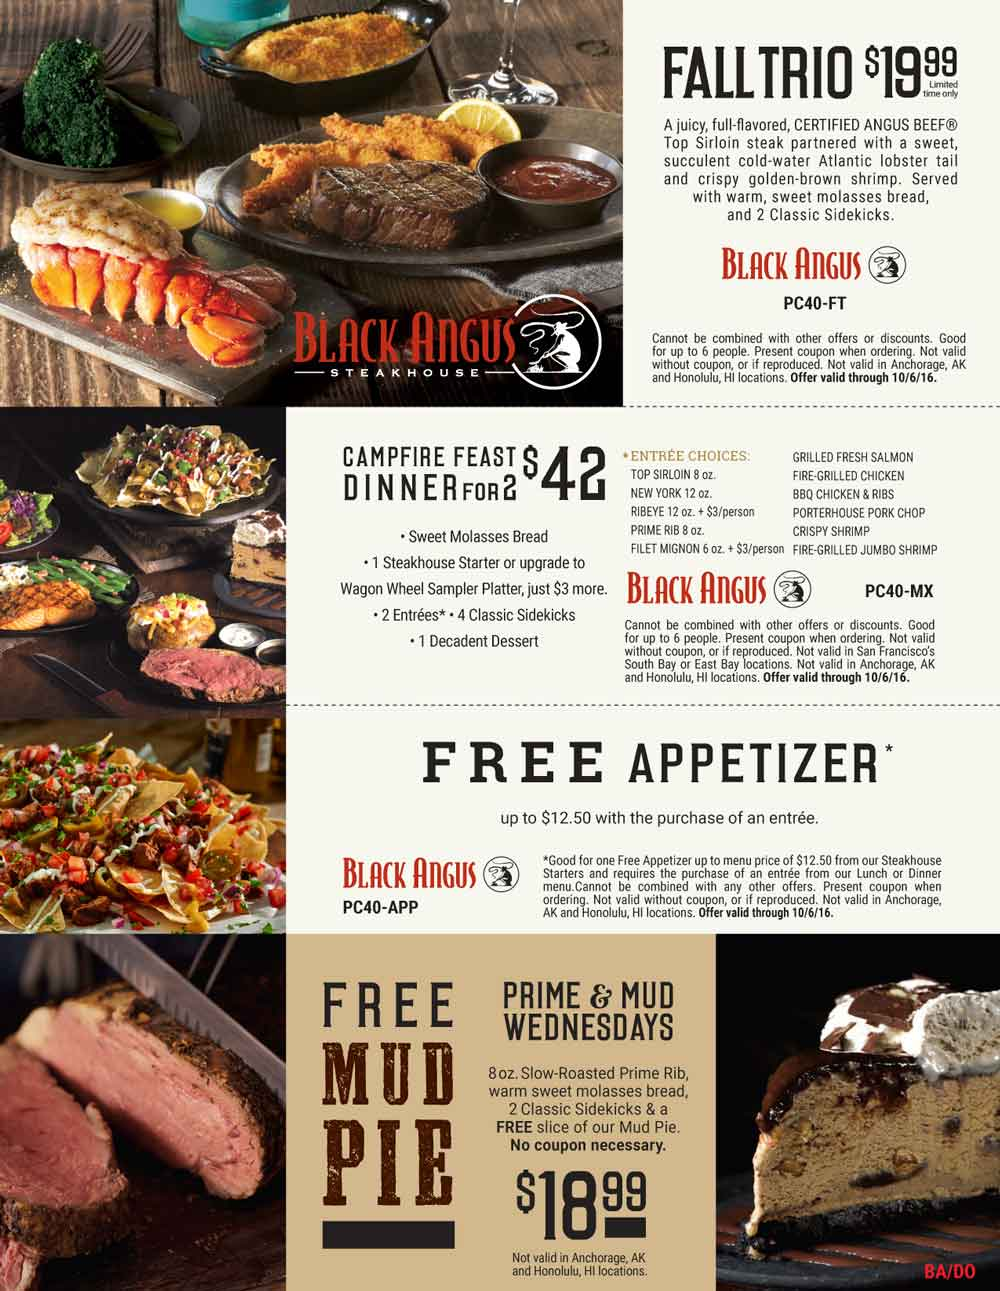 Black Angus Coupon April 2017 Free appetizer with your entree & more at Black Angus steakhouse